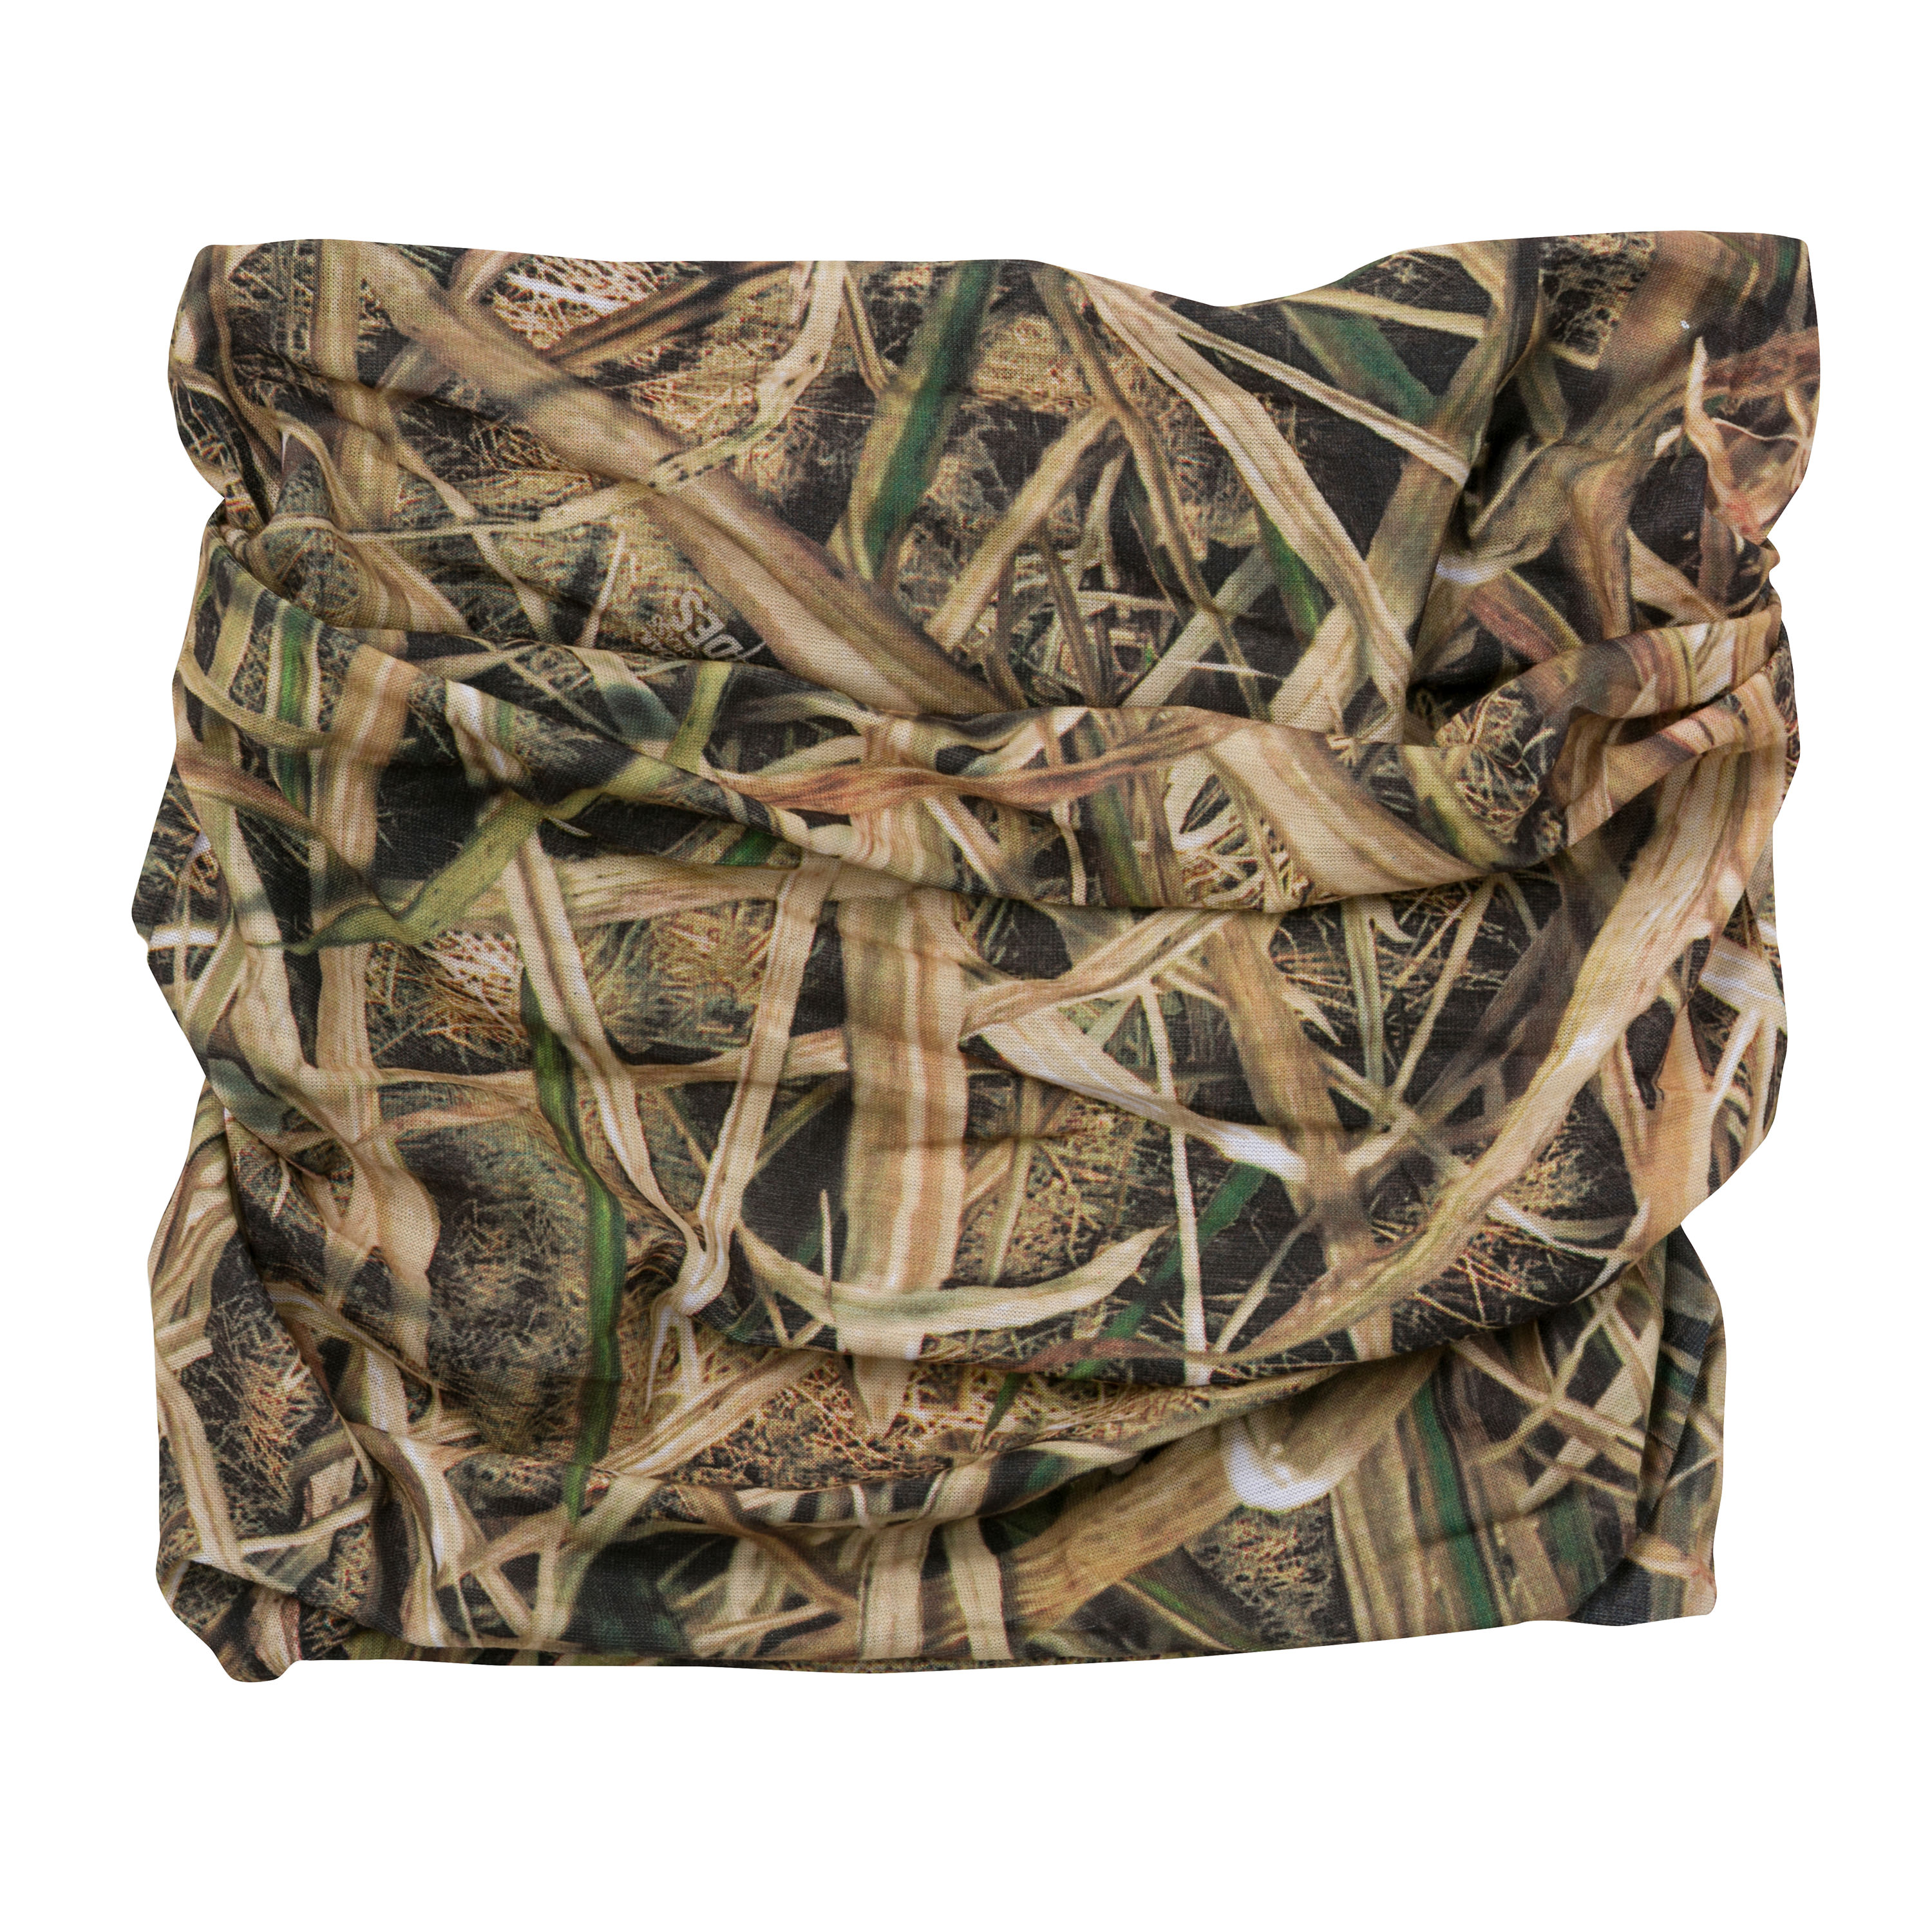 Browning Quik-Cover Multi-Function Head Gear Mossy Oak Shadow Grass Blades